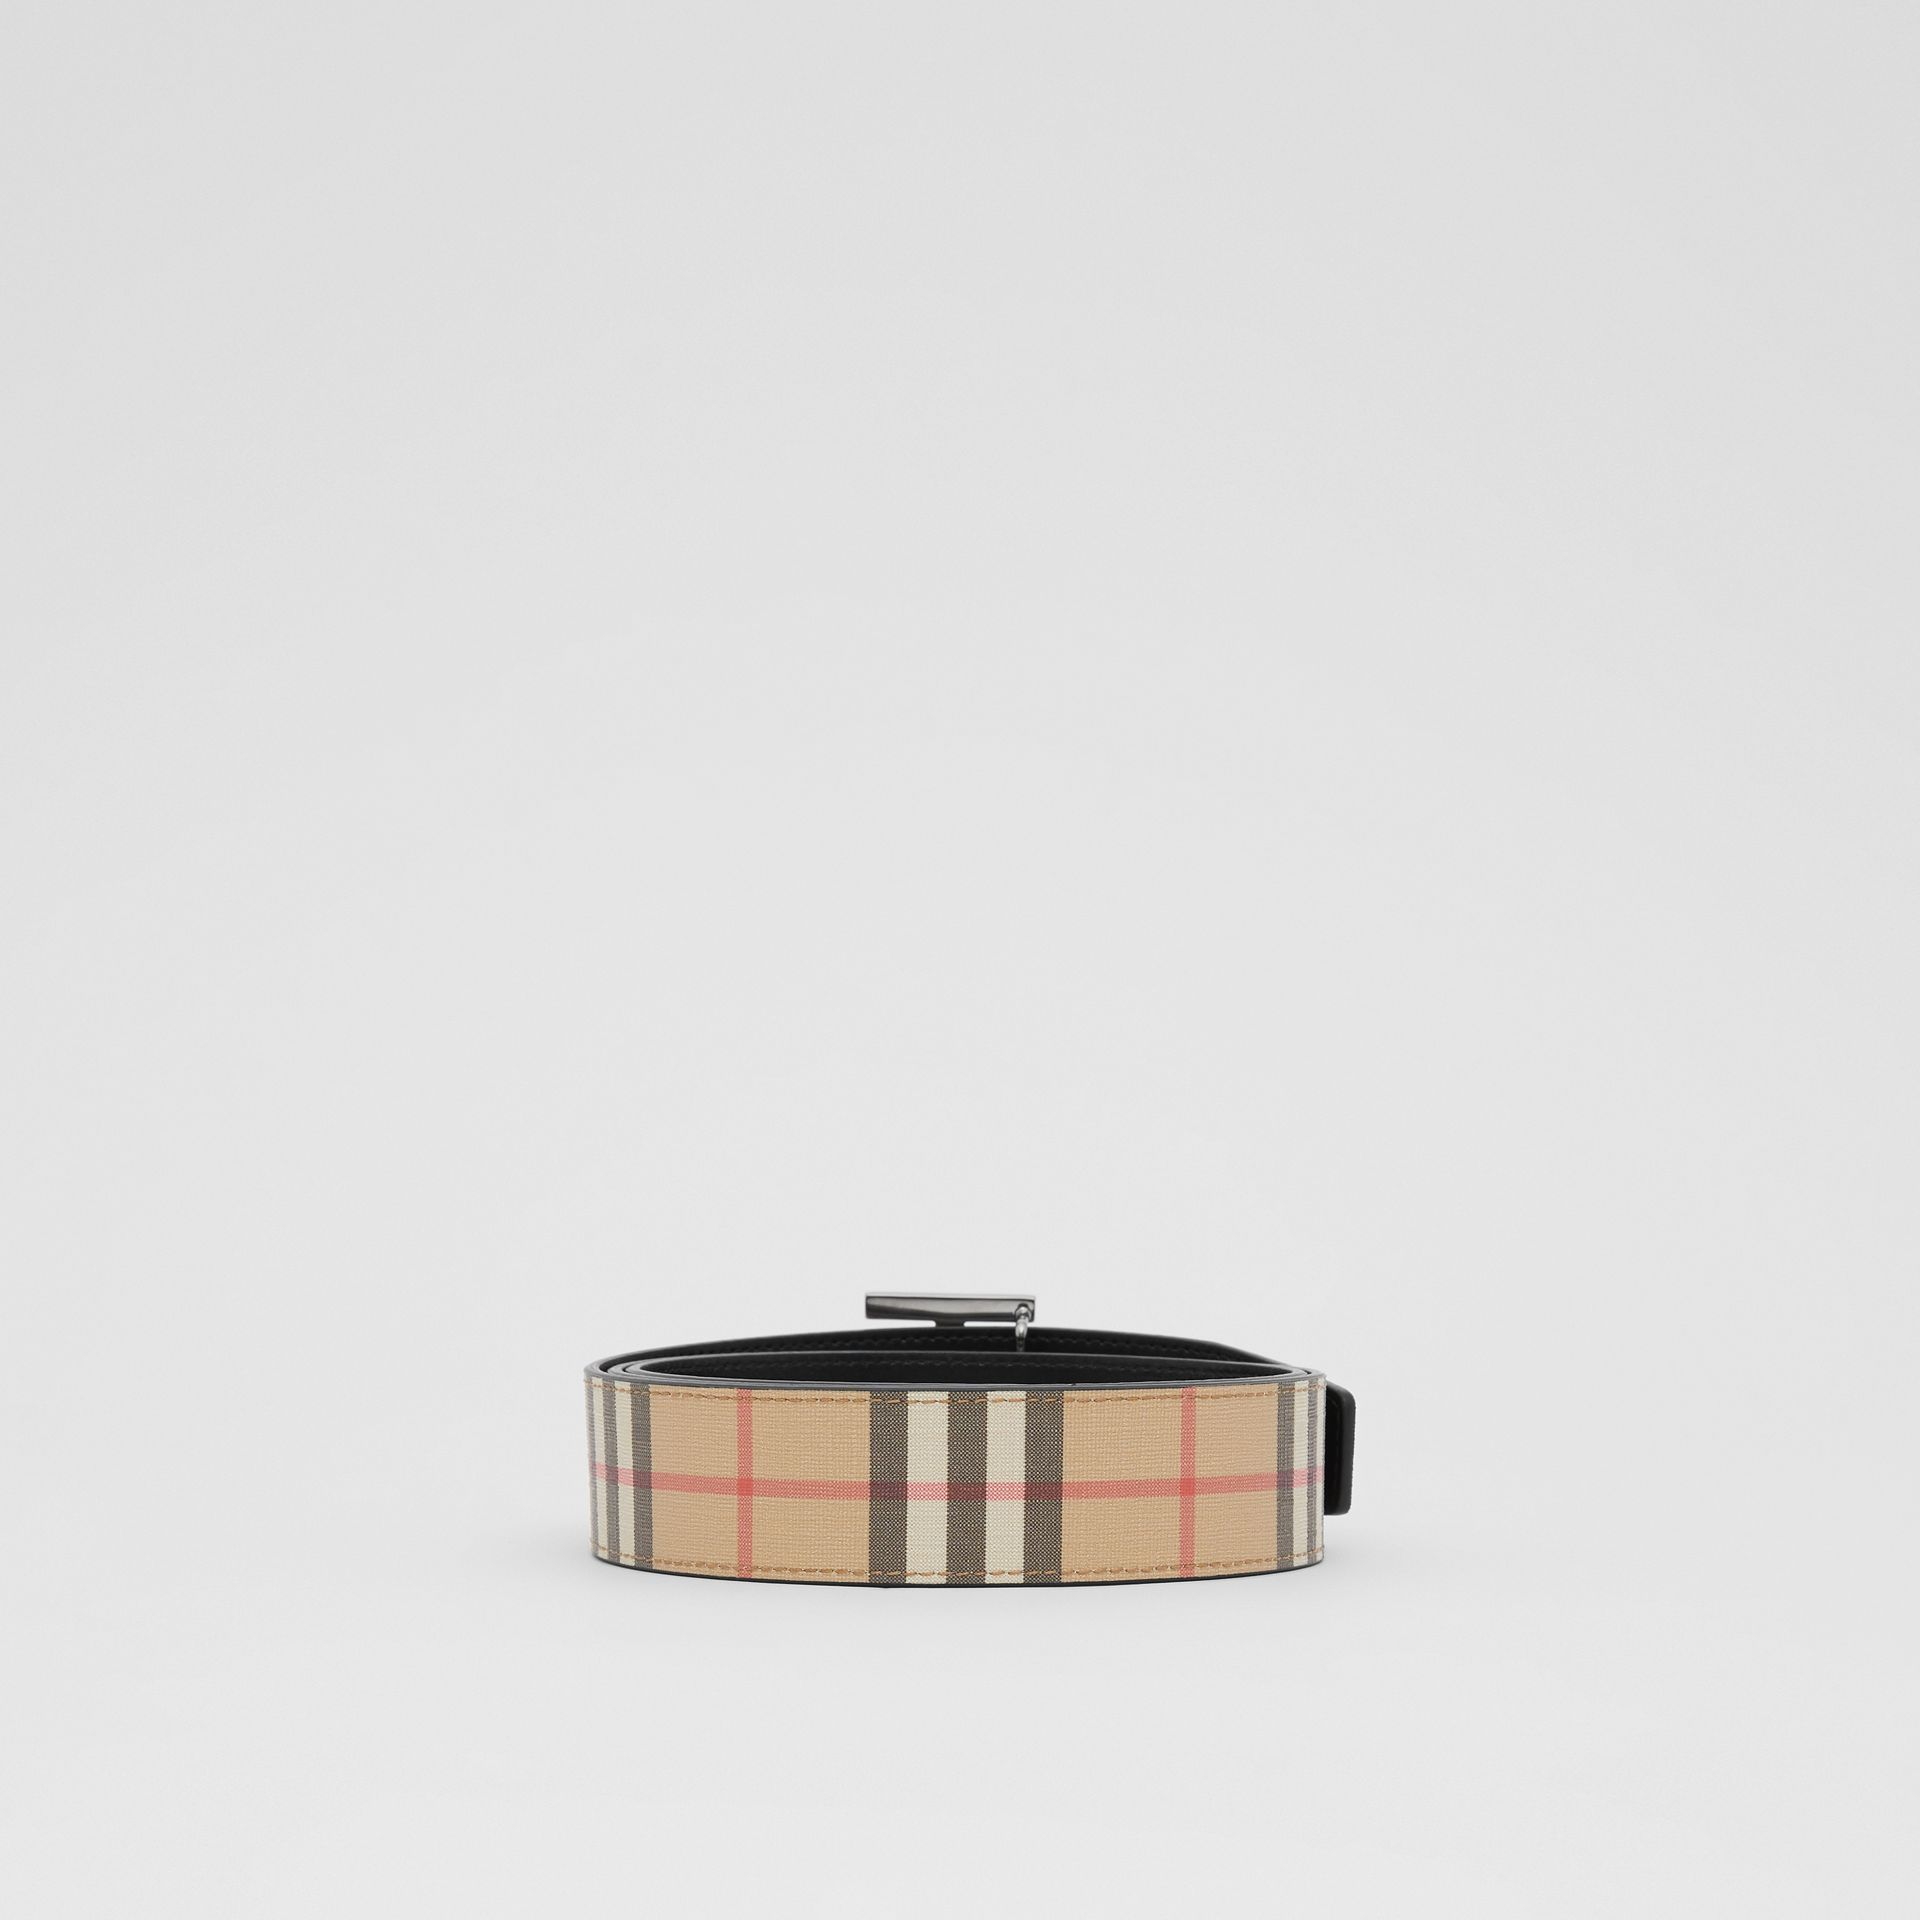 Reversible Monogram Motif Vintage Check Belt in Archive Beige - Men | Burberry - gallery image 4